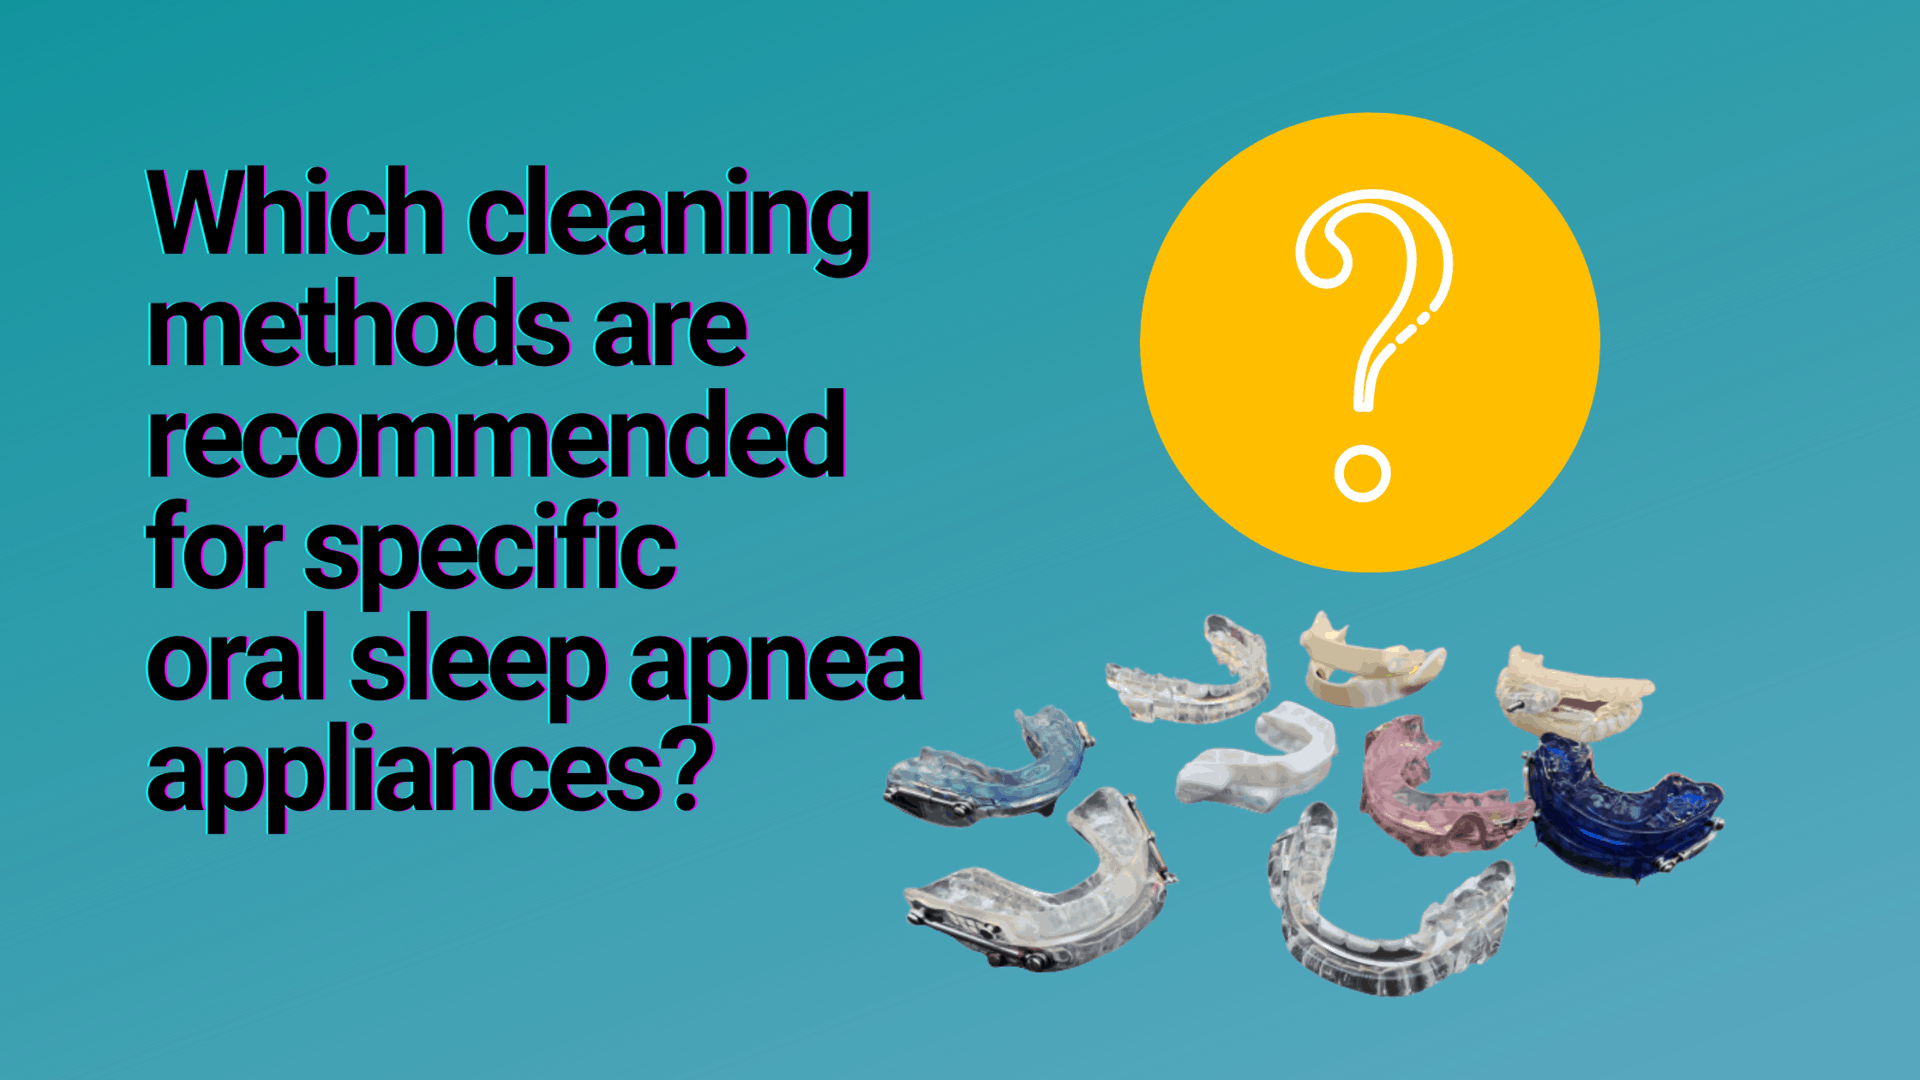 Cleaning specific sleep apnea snoring devices